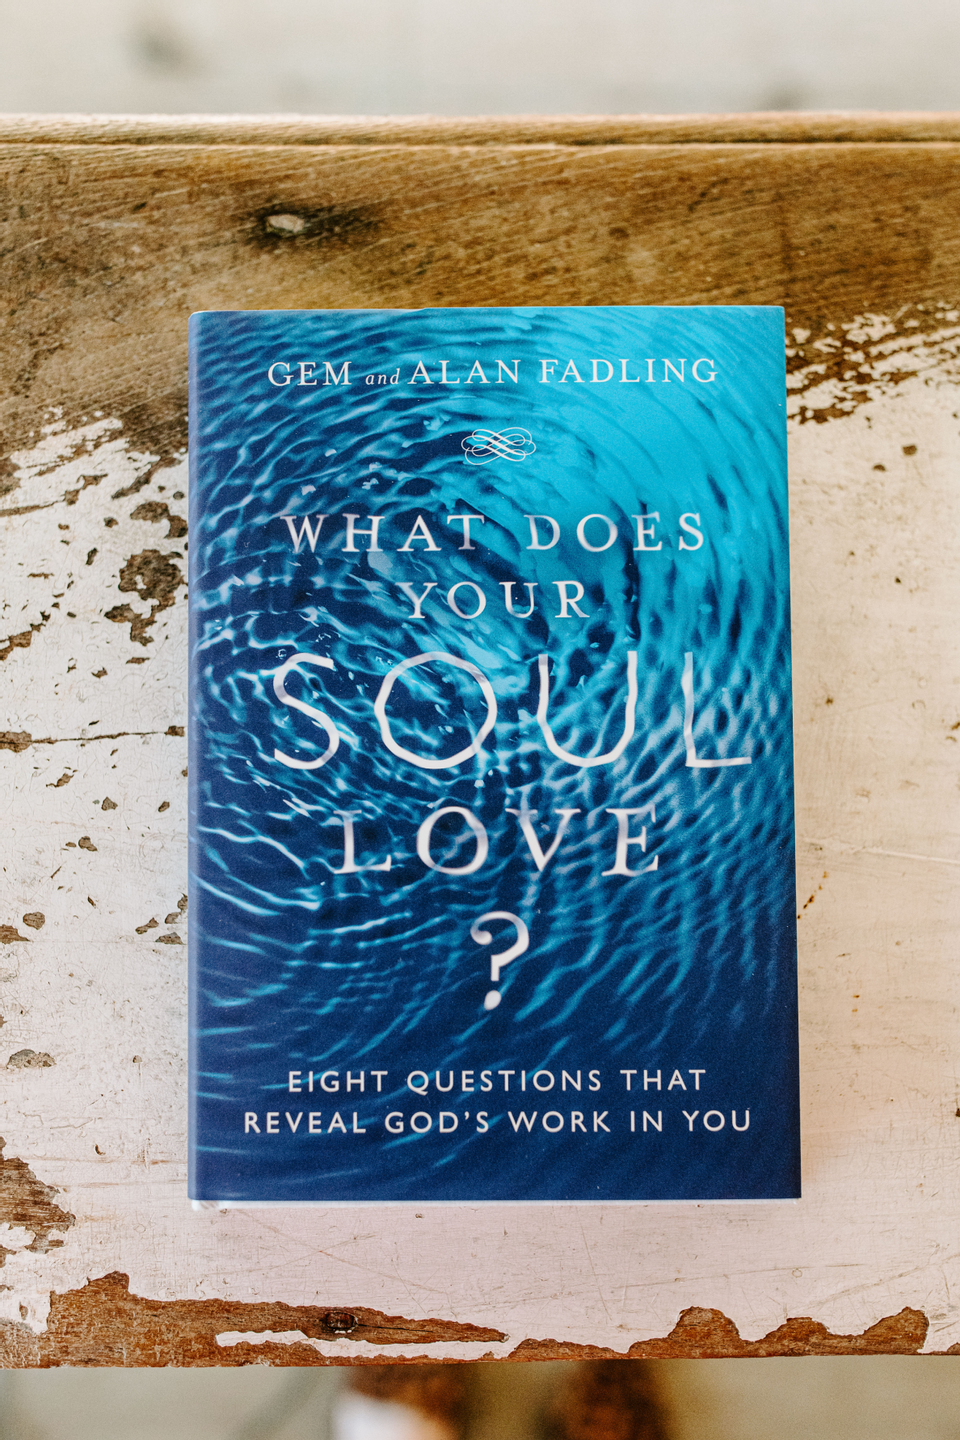 What Does Your Soul Love? book